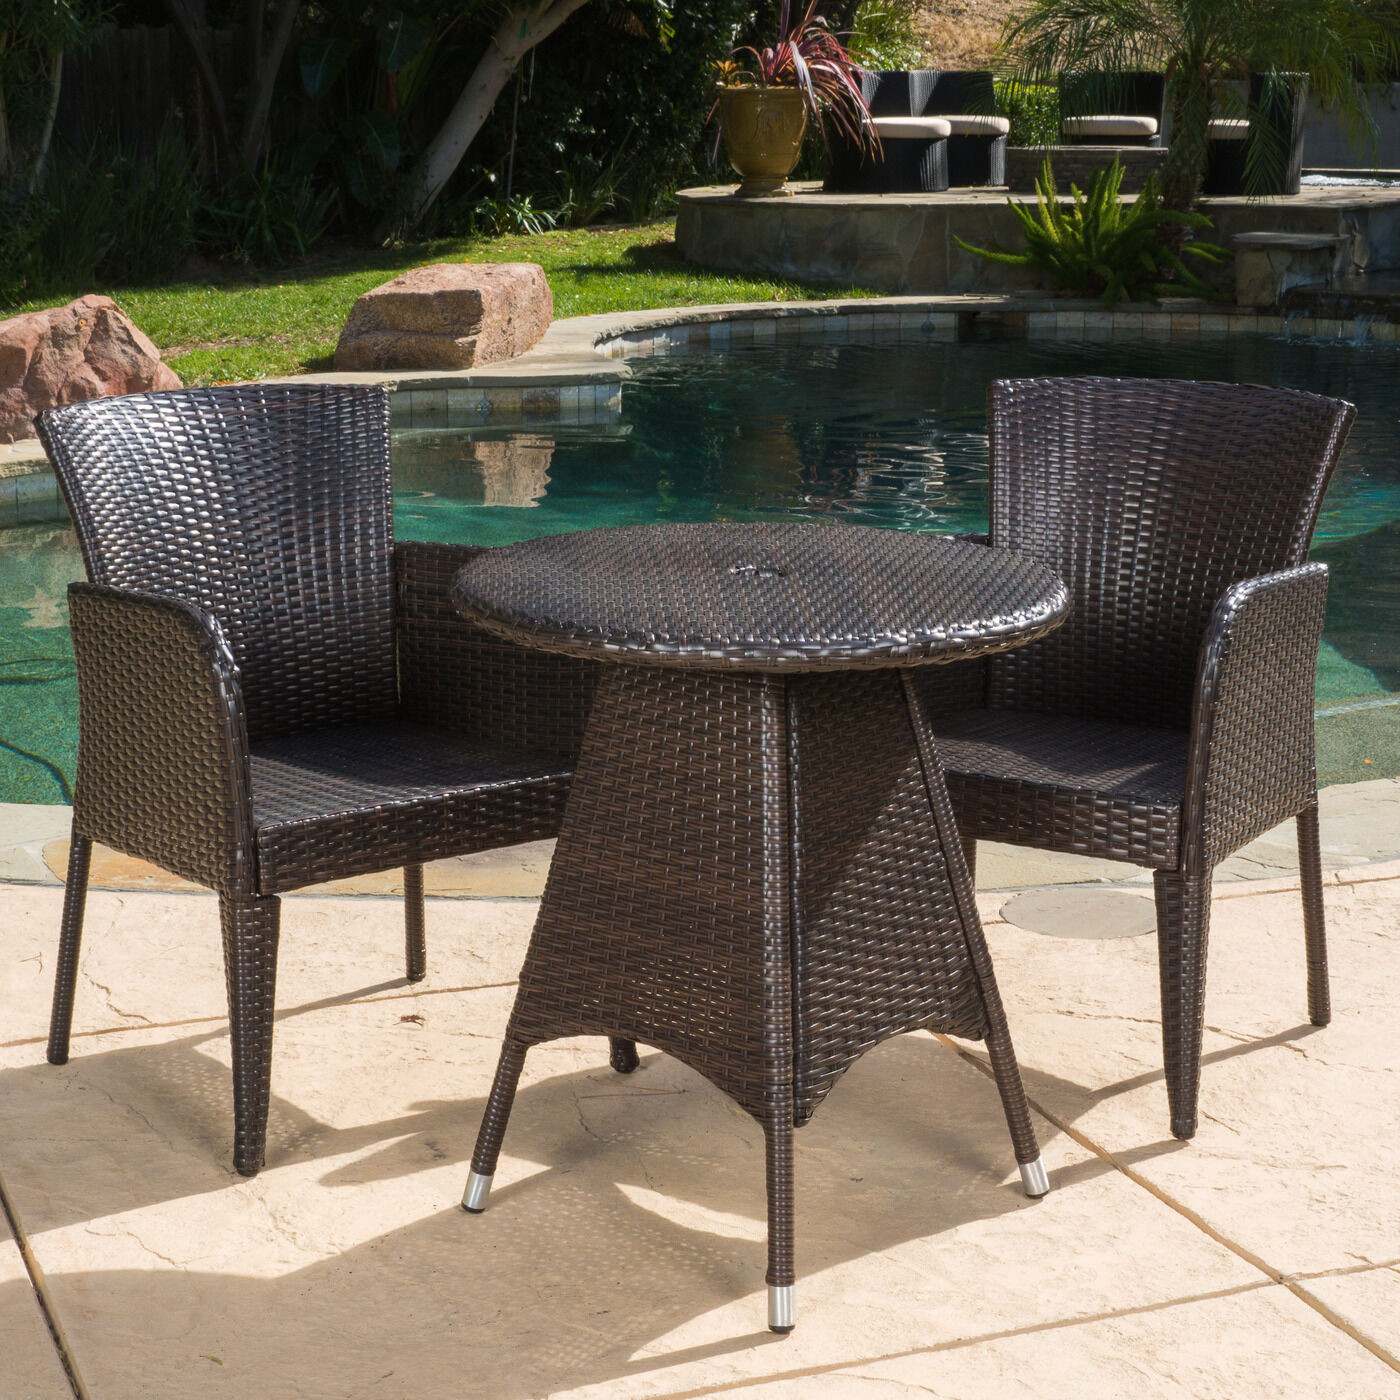 Best ideas about 3 Piece Patio Set . Save or Pin Outdoor Patio Set Modern Rattan Bistro Contemporary Wicker Now.